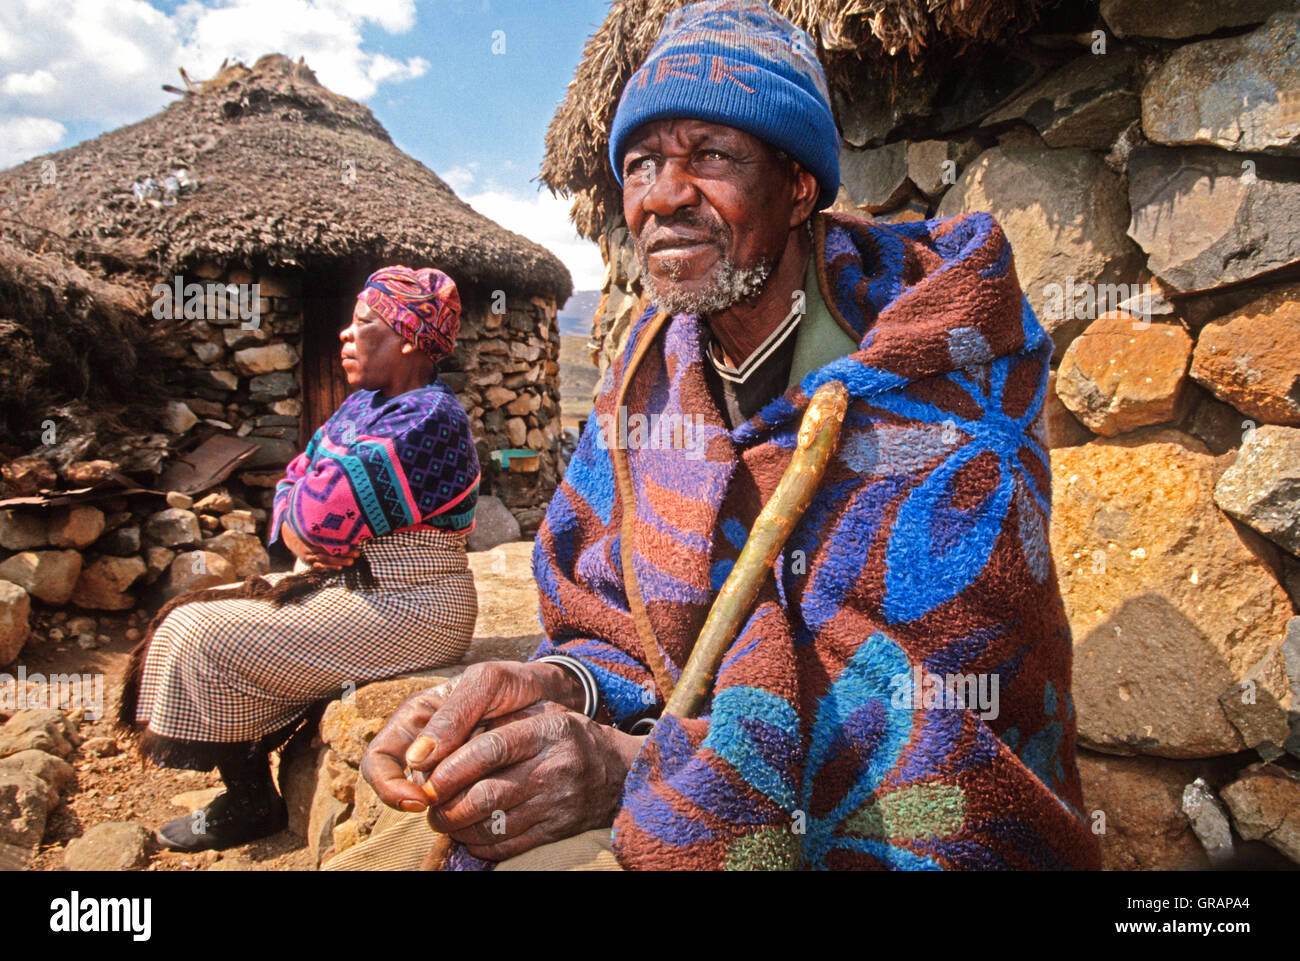 Elderly Basotho couple by their rondavels at Sani Pass in Lesotho - Stock Image